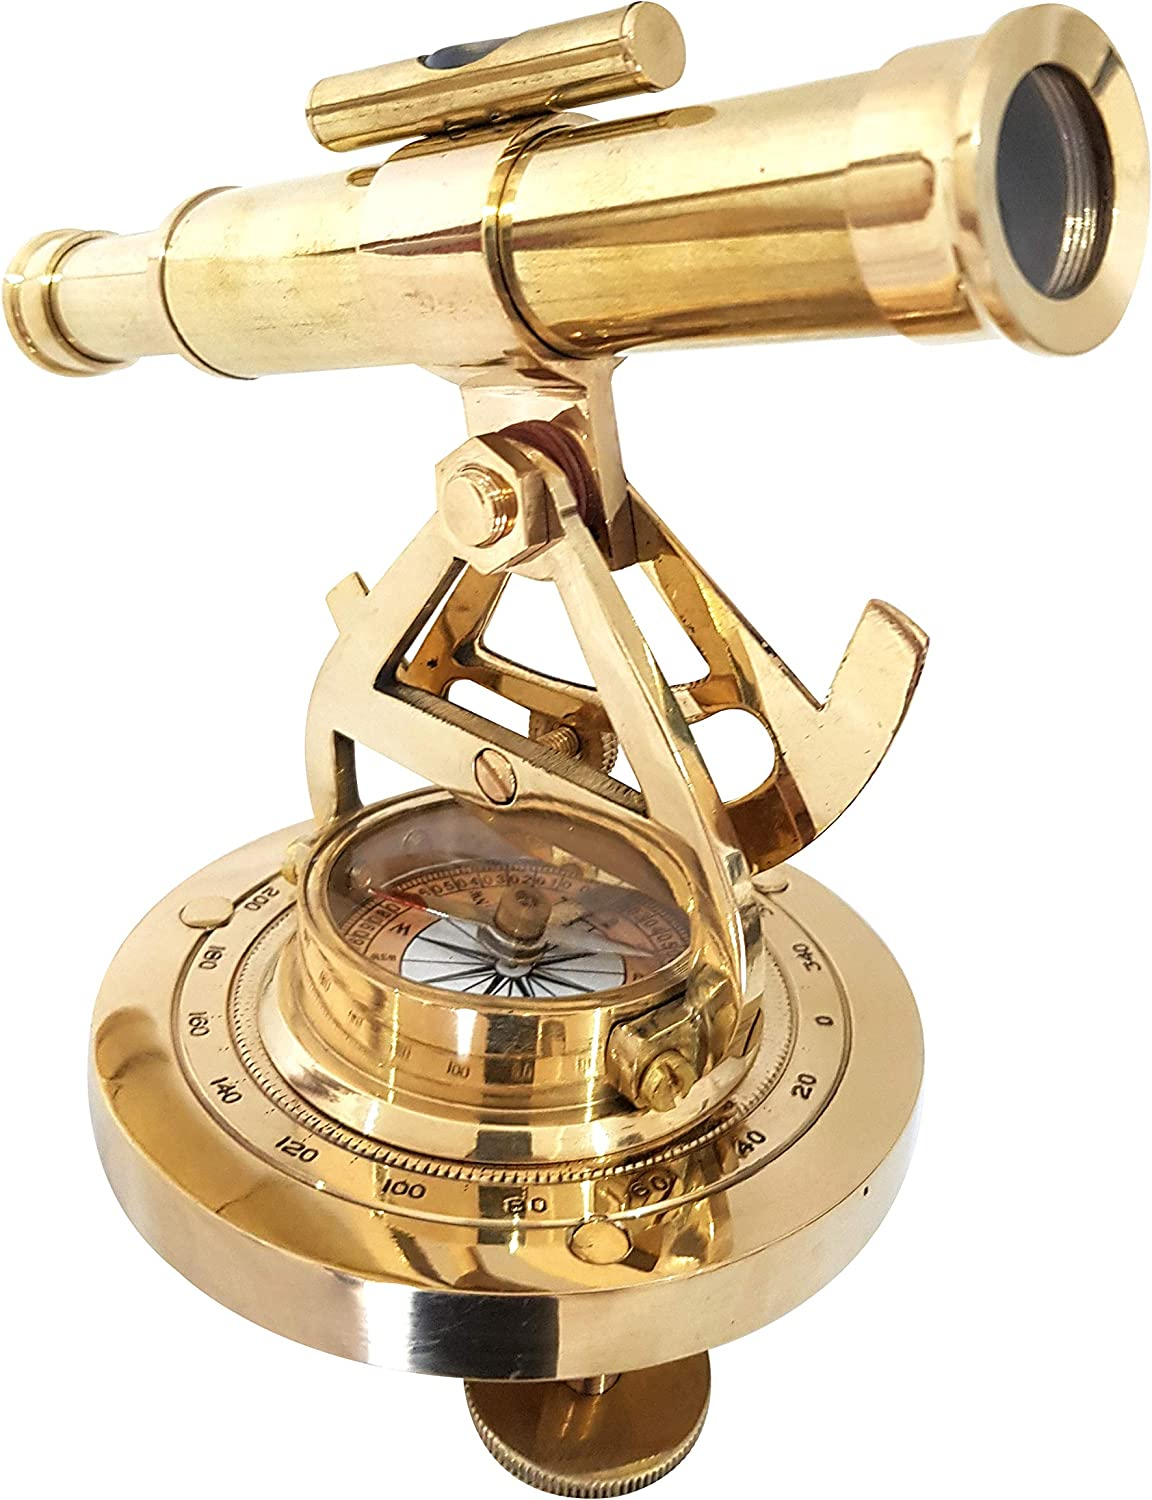 """8/"""" Brass ALIDADE Telescope With Compass Survey Tool Collectibles Nautical Gift"""